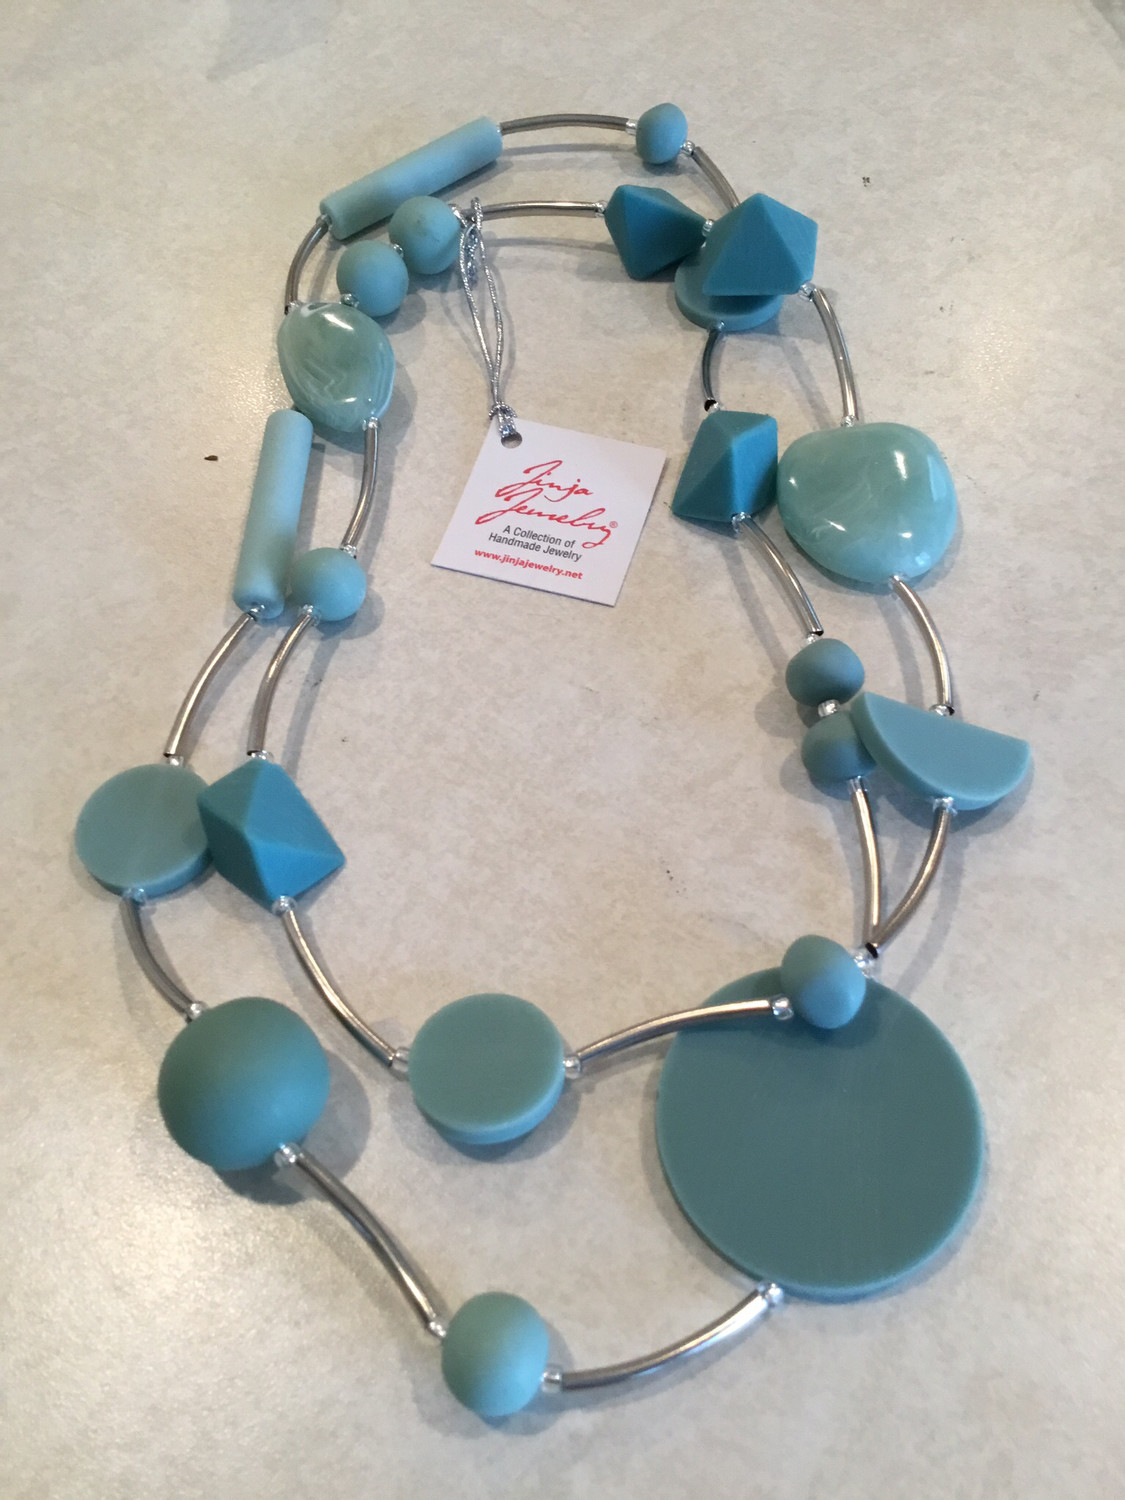 Stainless Steel Sage, Mint And Turquoise Handmade Beads